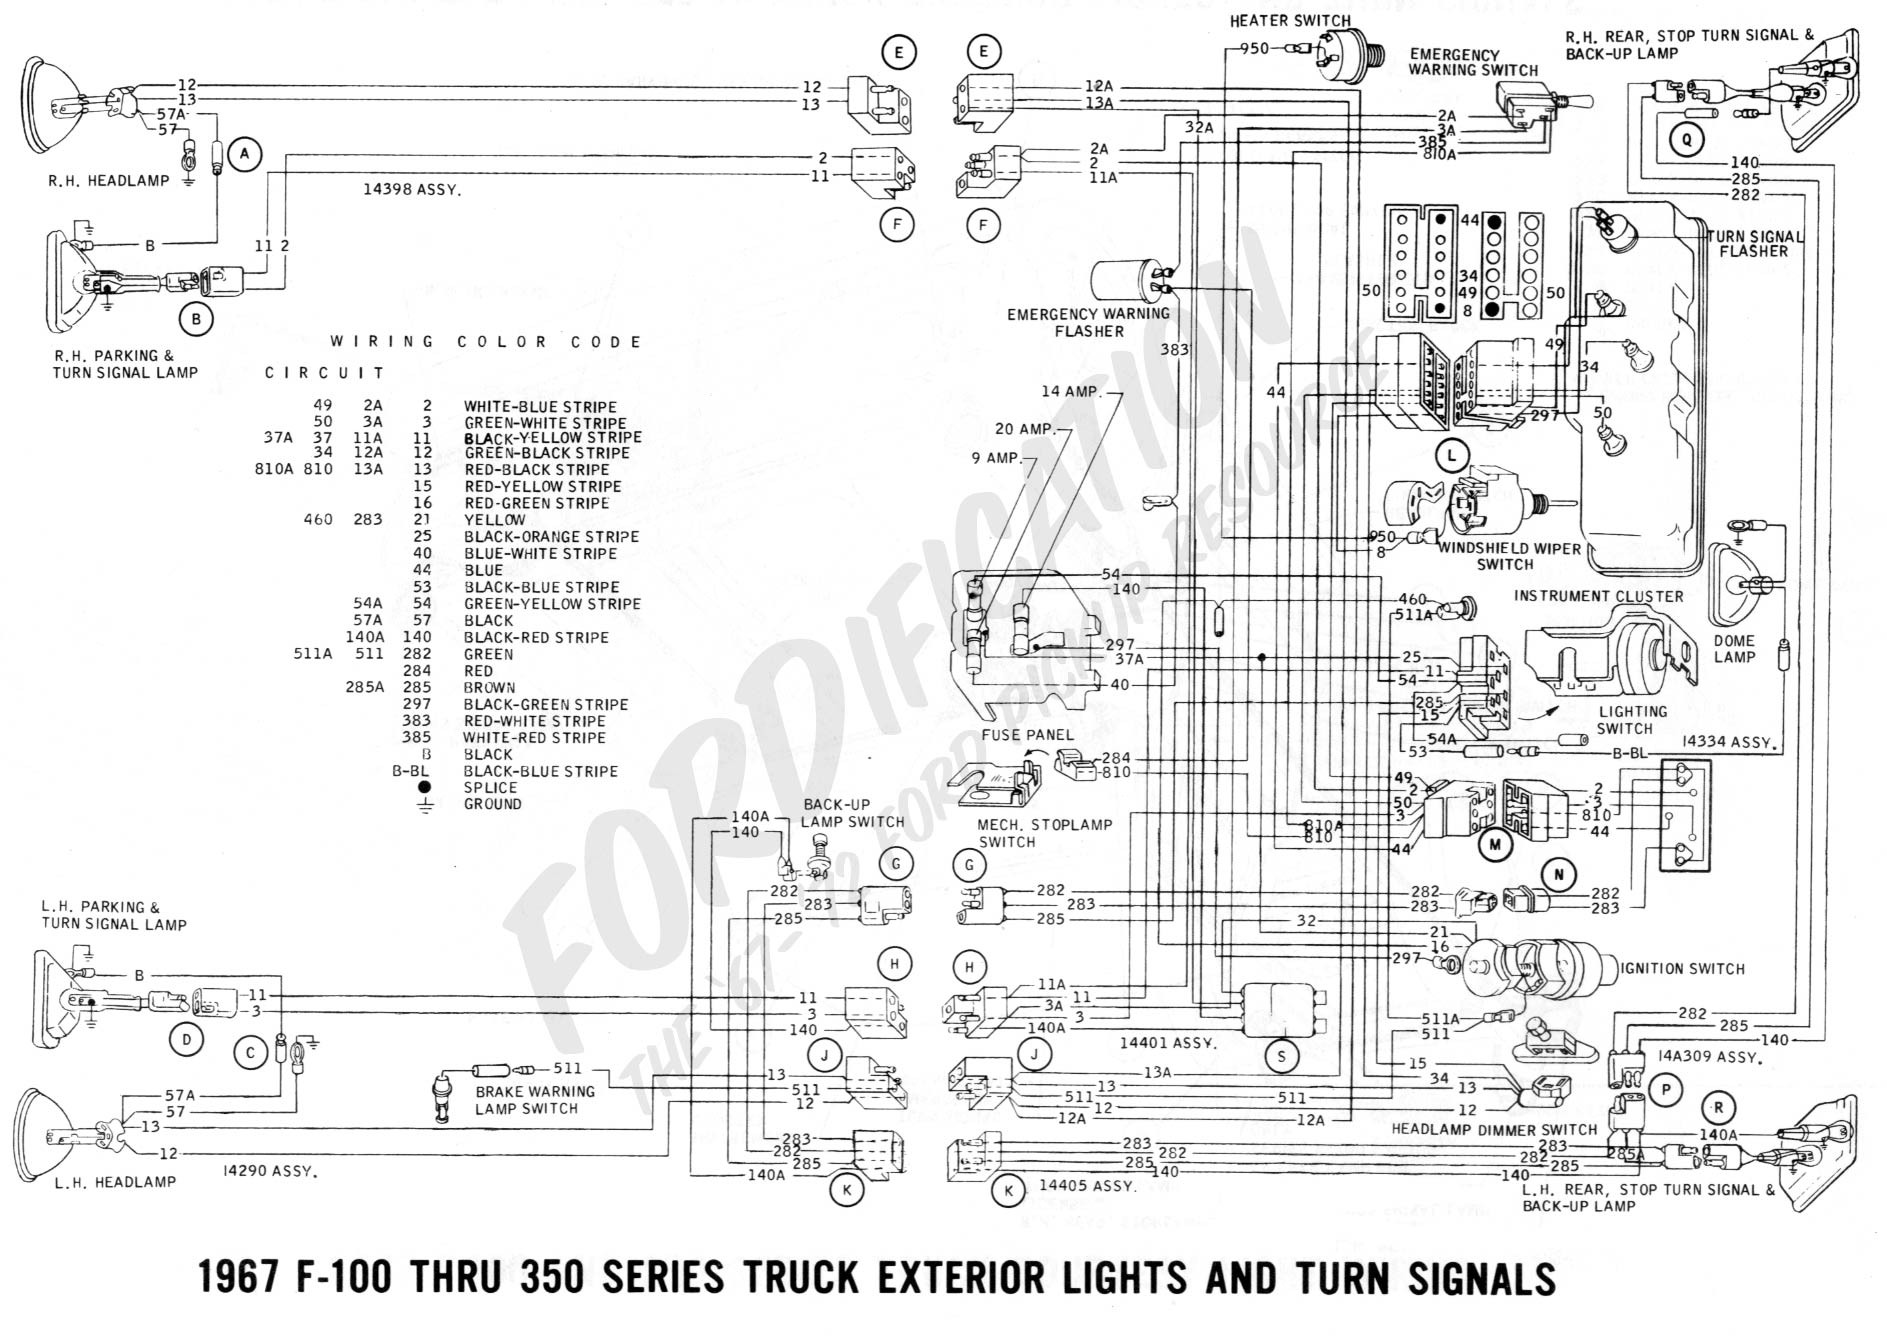 65 Ford Mustang Voltage Regulator Wiring Diagram - Wiring Diagrams  Ford Voltage Regulator Wiring Diagram on 1965 ford voltage regulator wiring diagram, 1971 ford voltage regulator wiring diagram, 1949 ford voltage regulator wiring diagram,